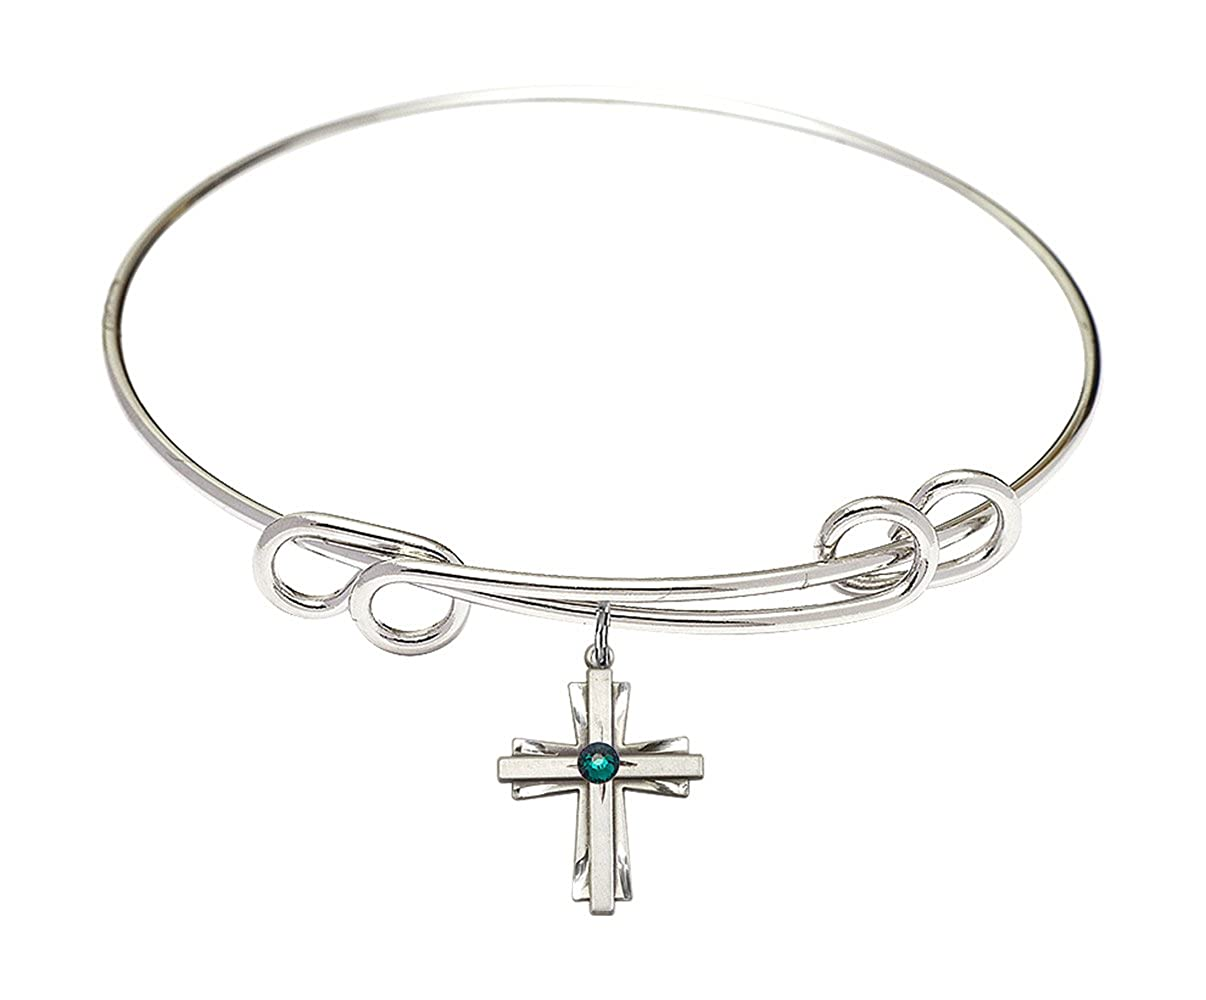 DiamondJewelryNY Double Loop Bangle Bracelet with a Cross Charm.